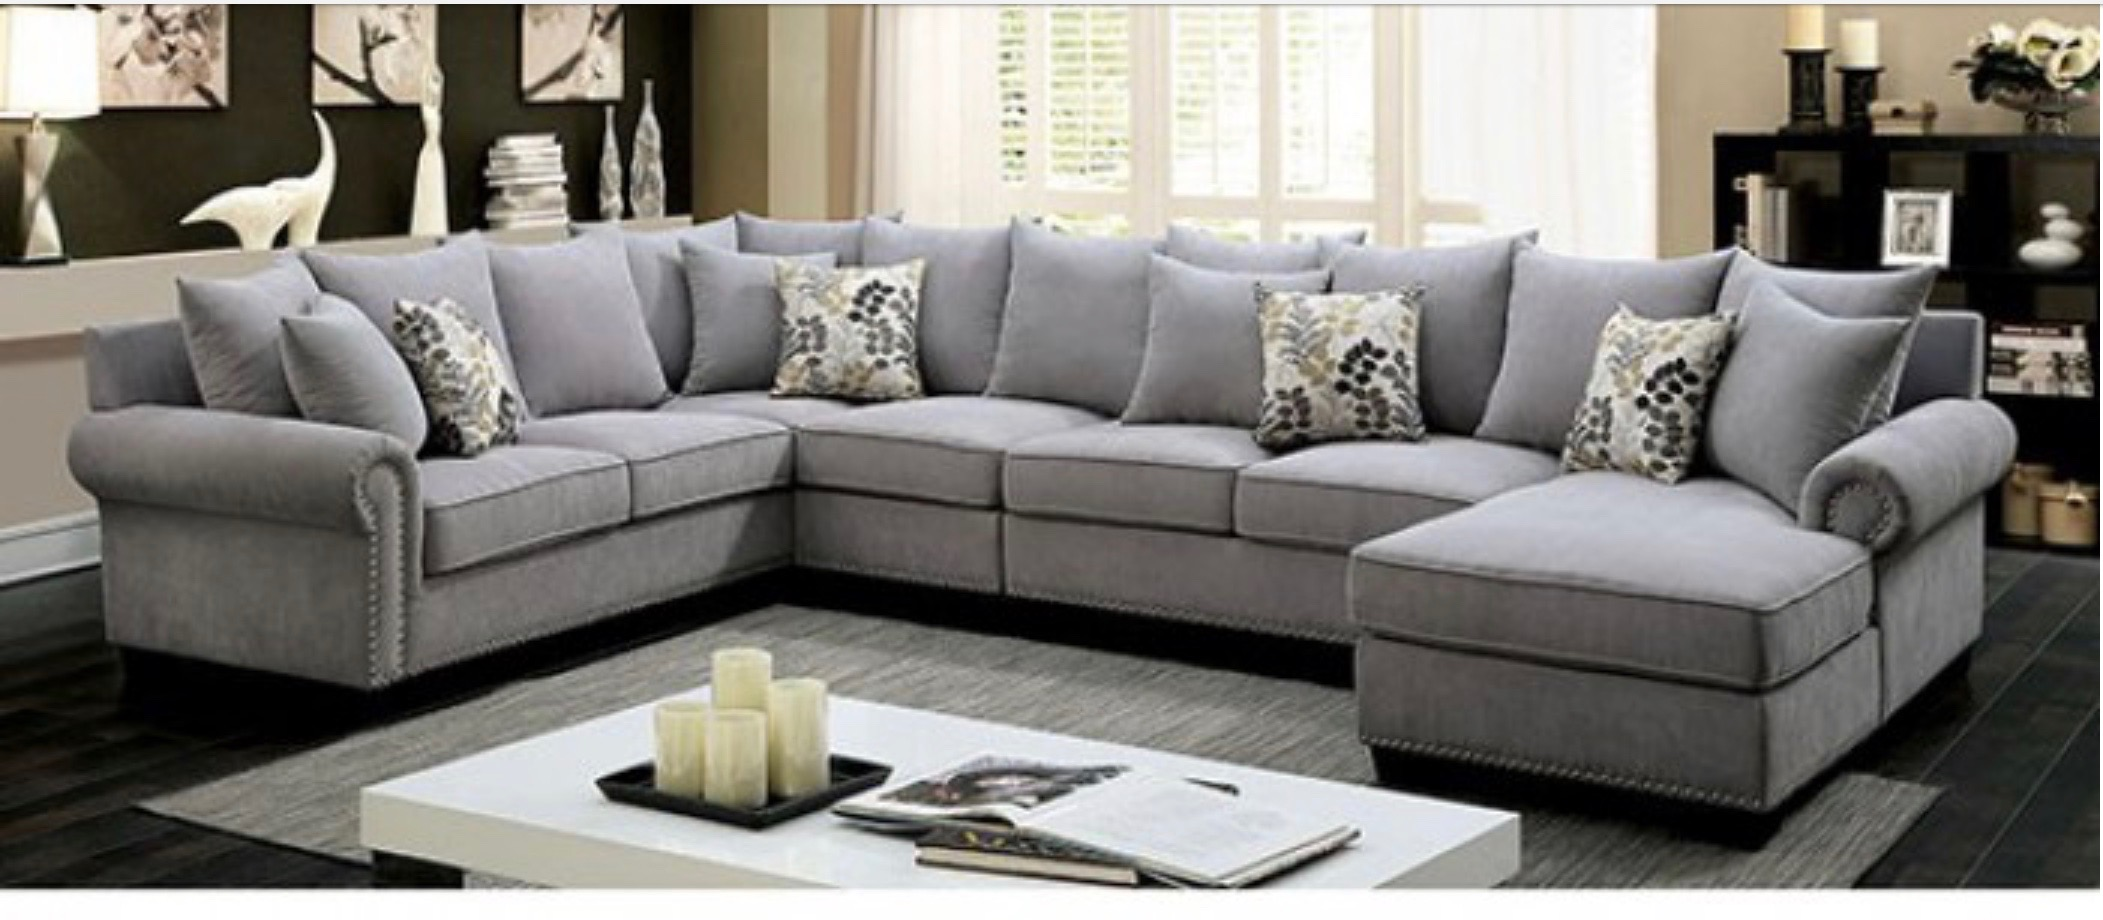 SECTIONAL+ CHAISE SET $1850